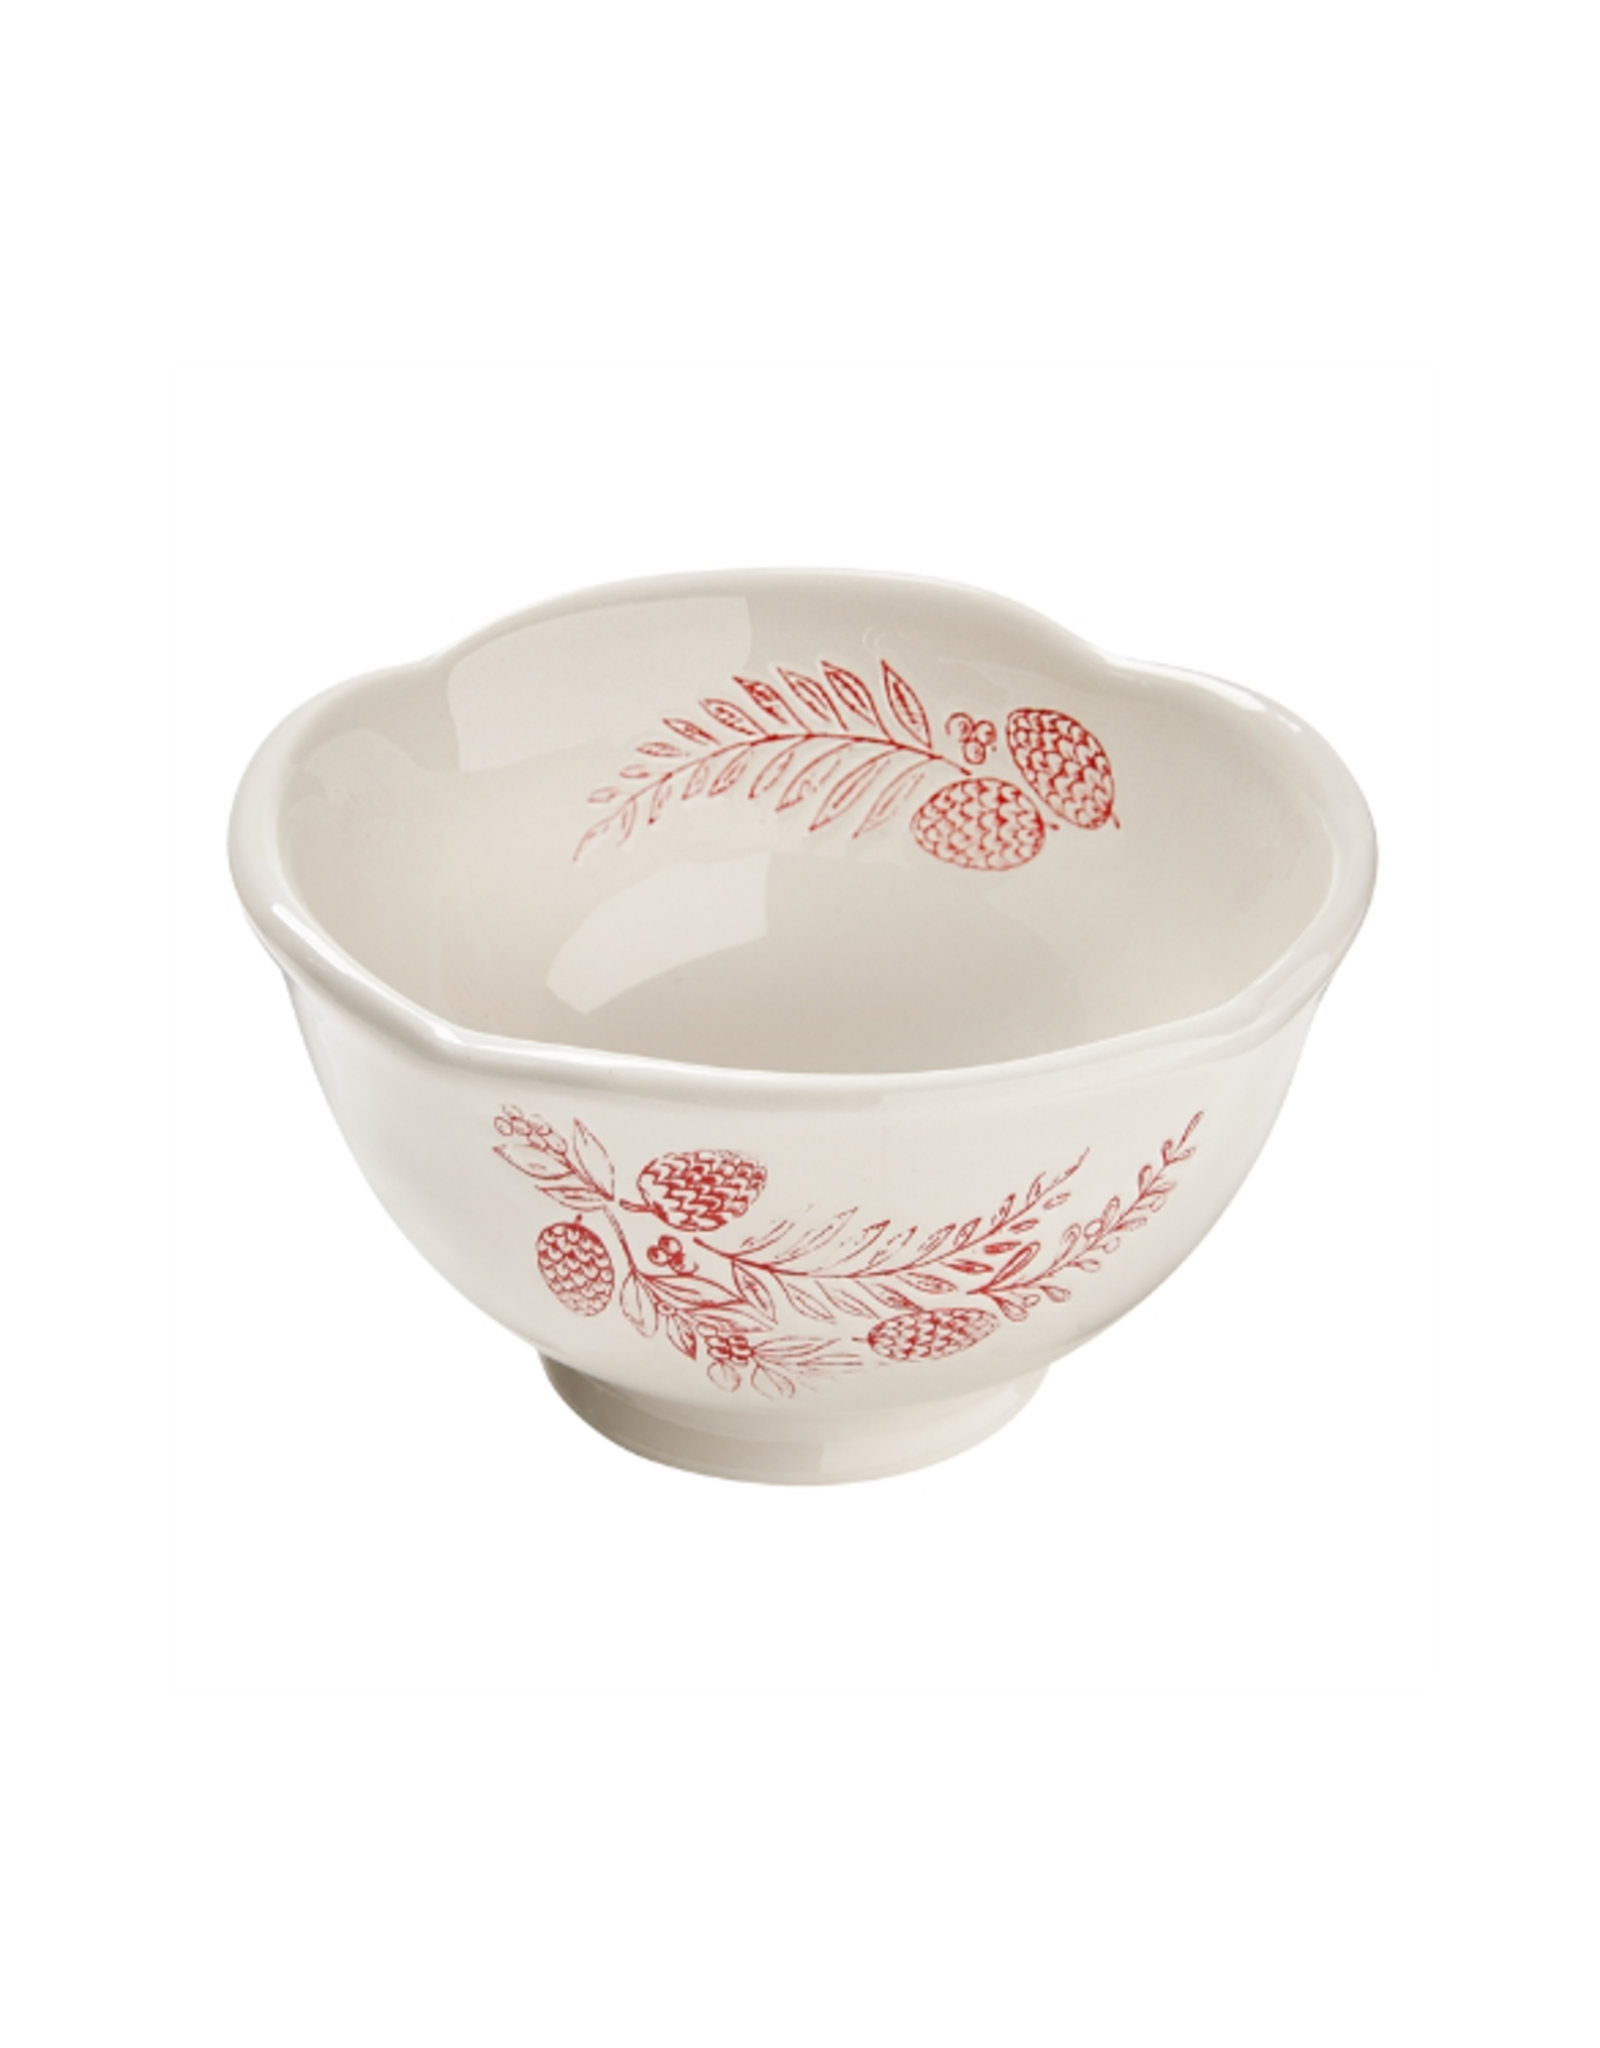 Tag Bowl - White & Red Sprig